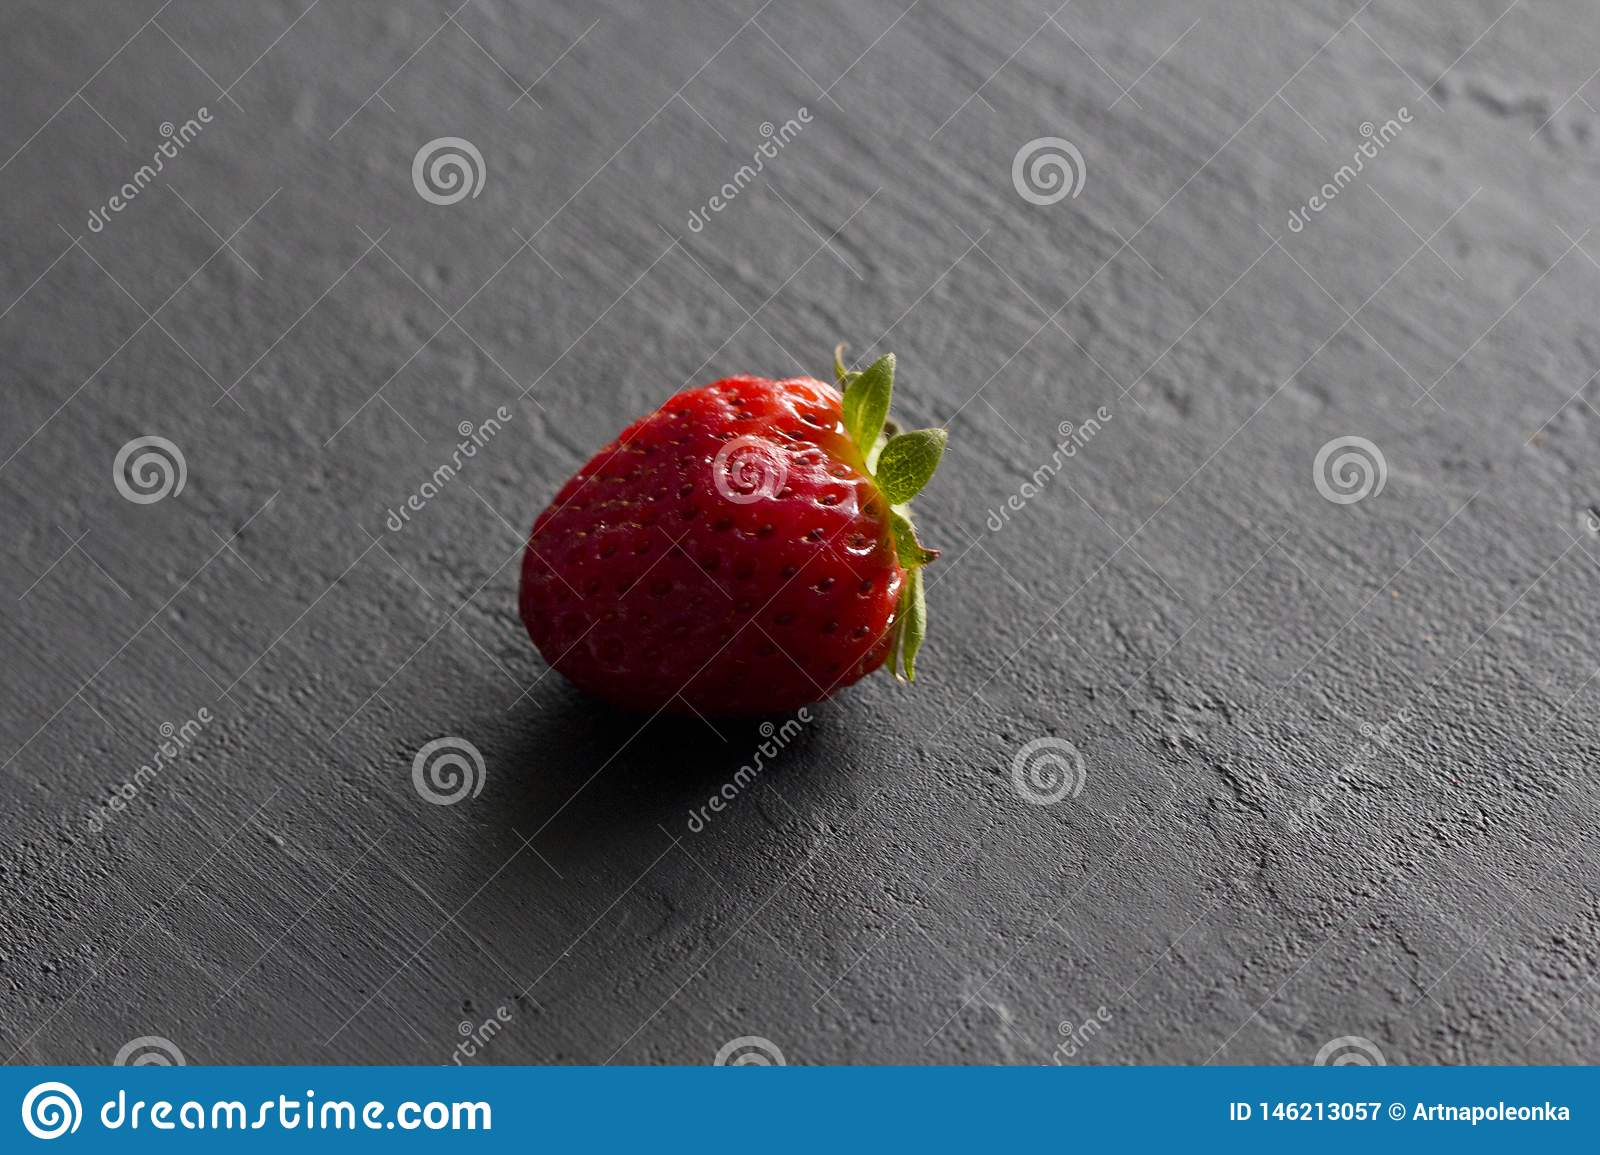 One red beautiful strawberry close-up, on a black dark concrete background. Minimalism. Side view, Copy Space For Your Text. Macro